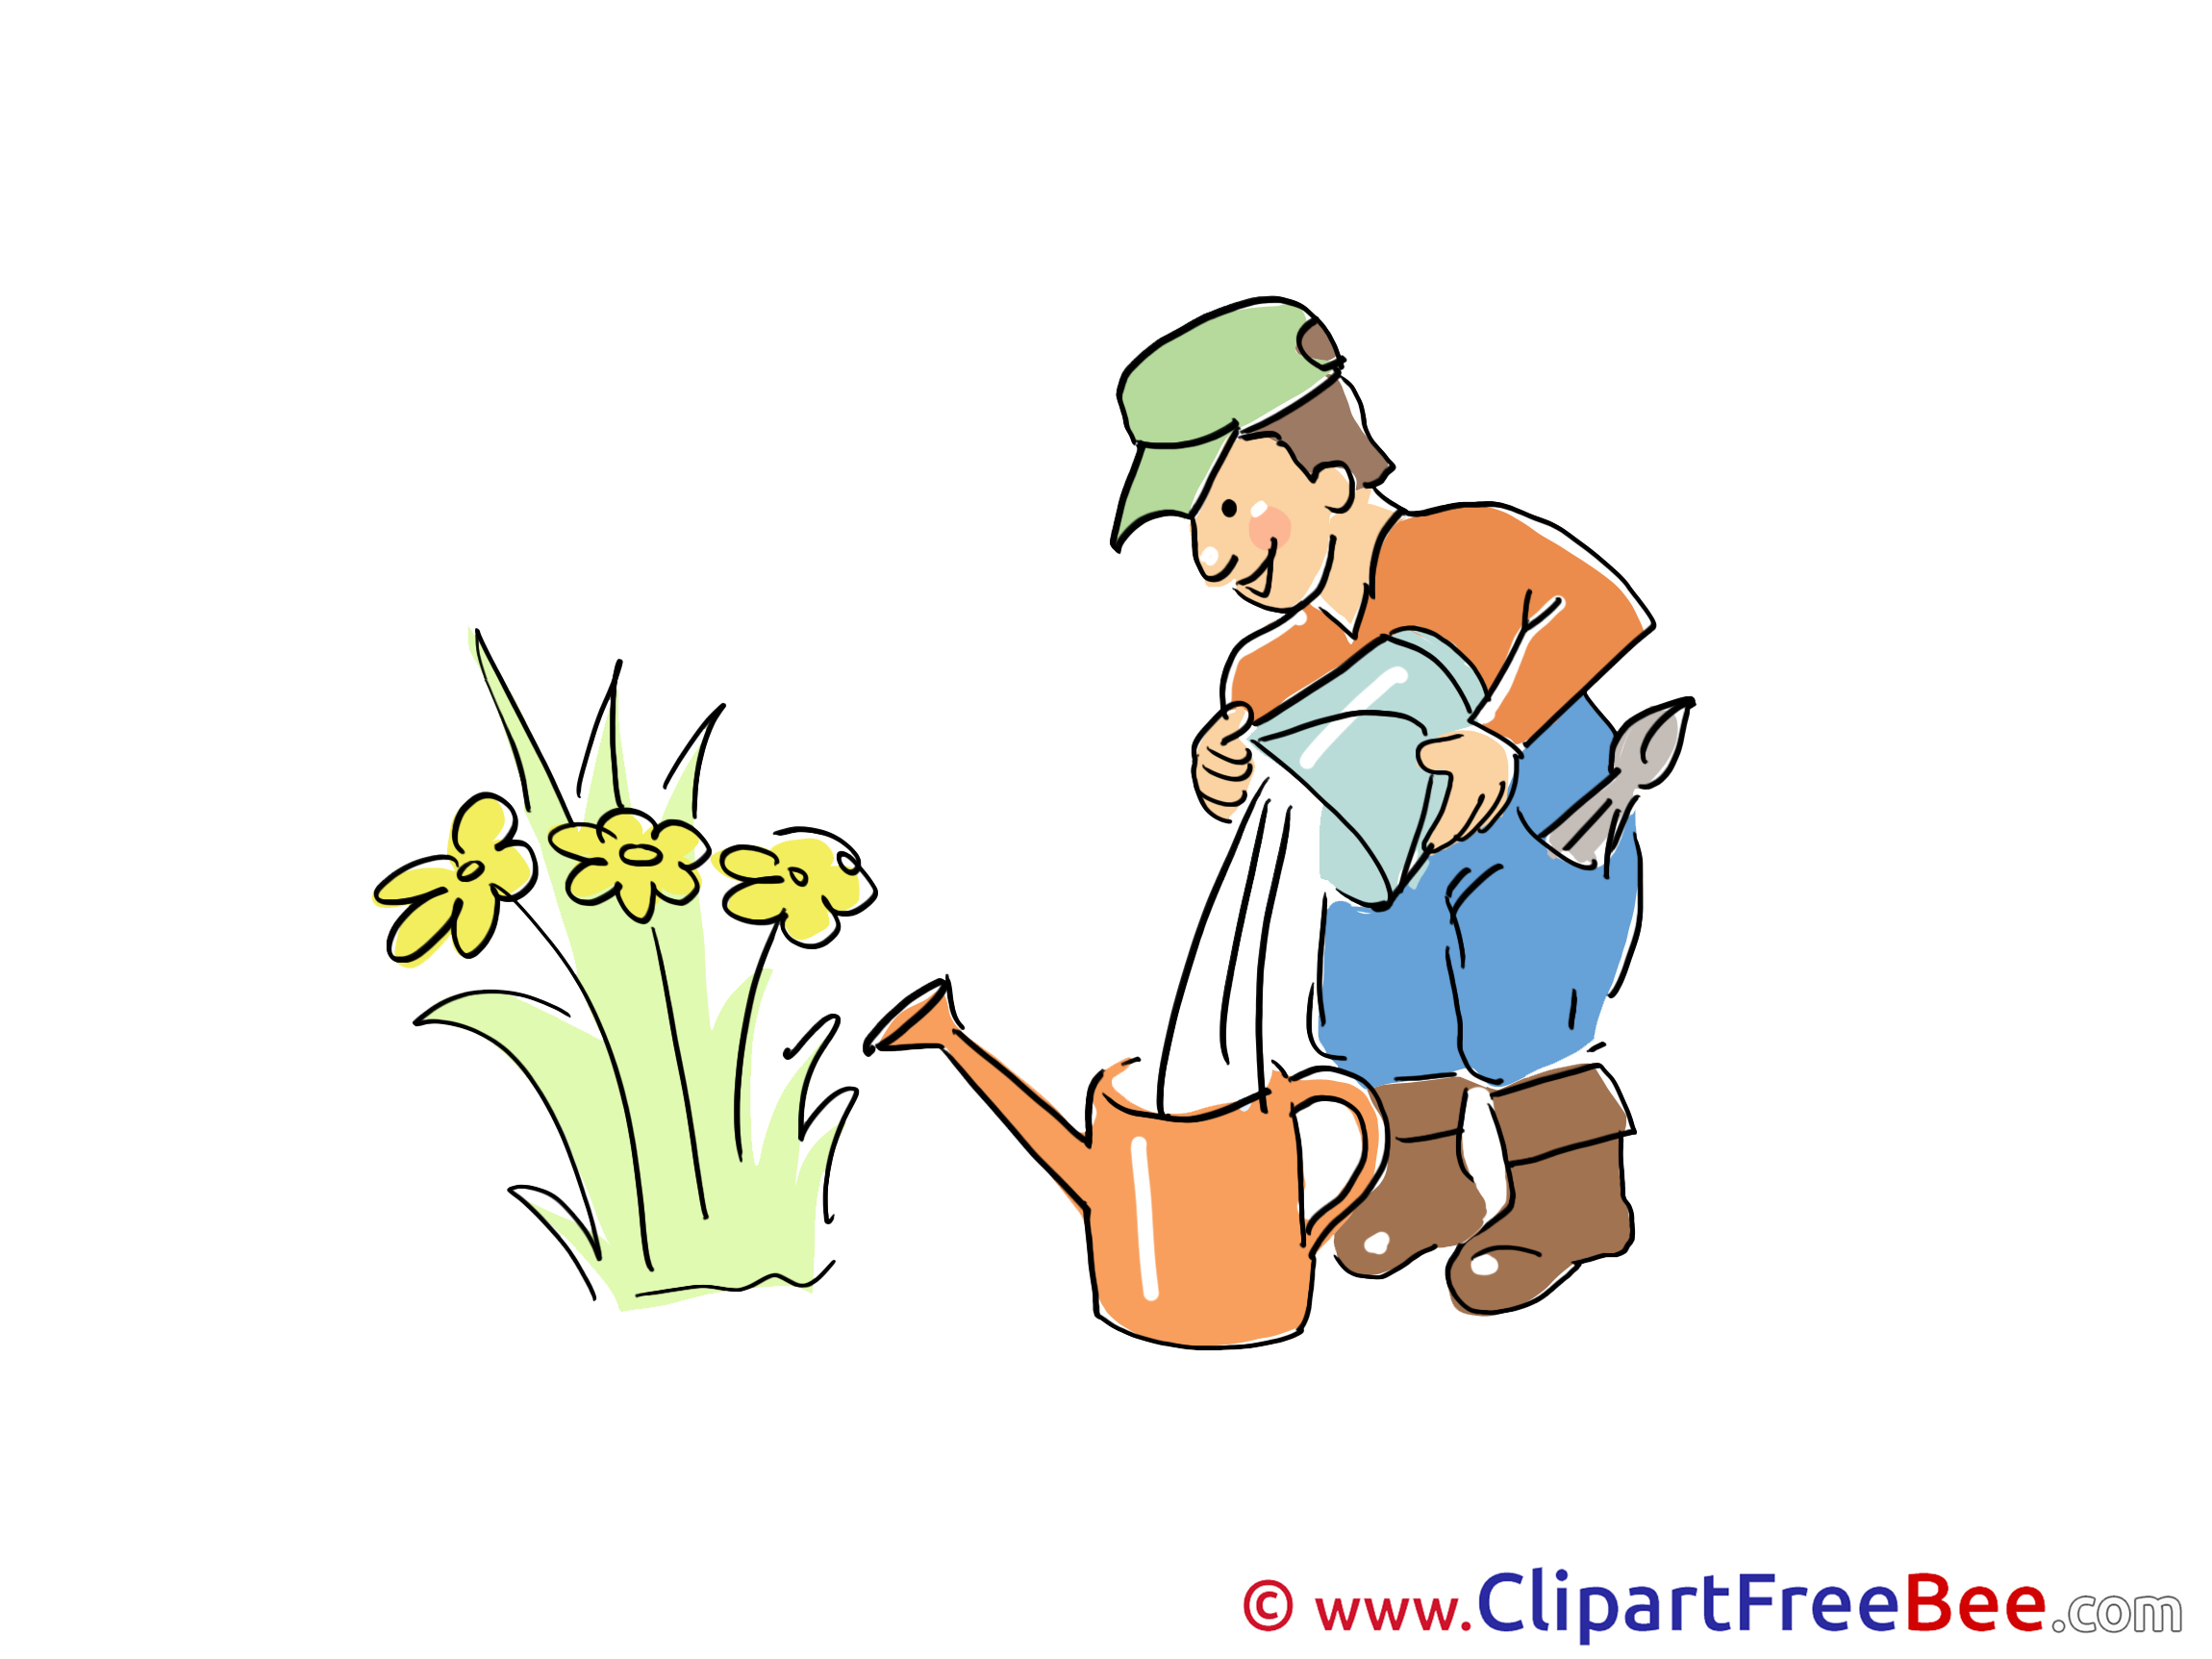 Gardener free Cliparts for download